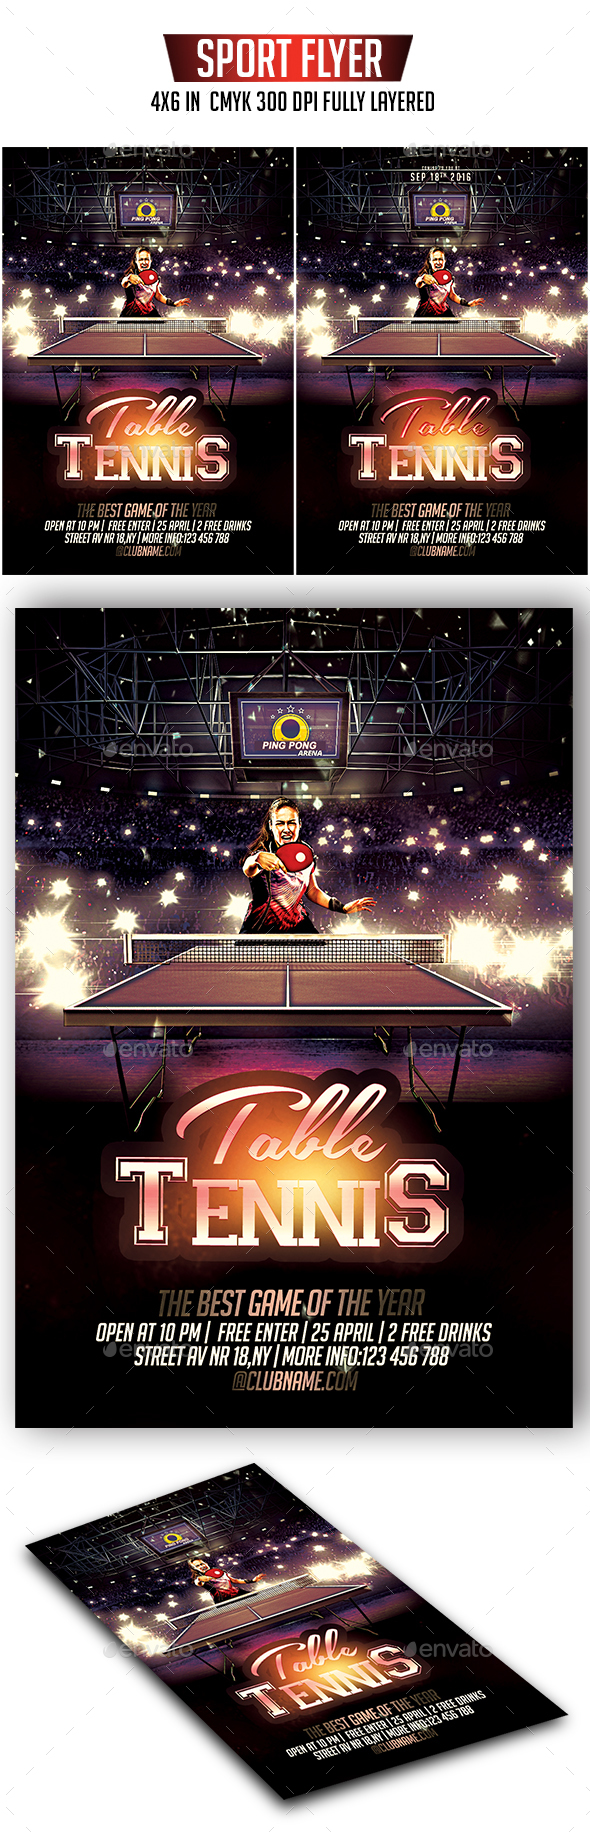 Table Tennis Flyer - Sports Events